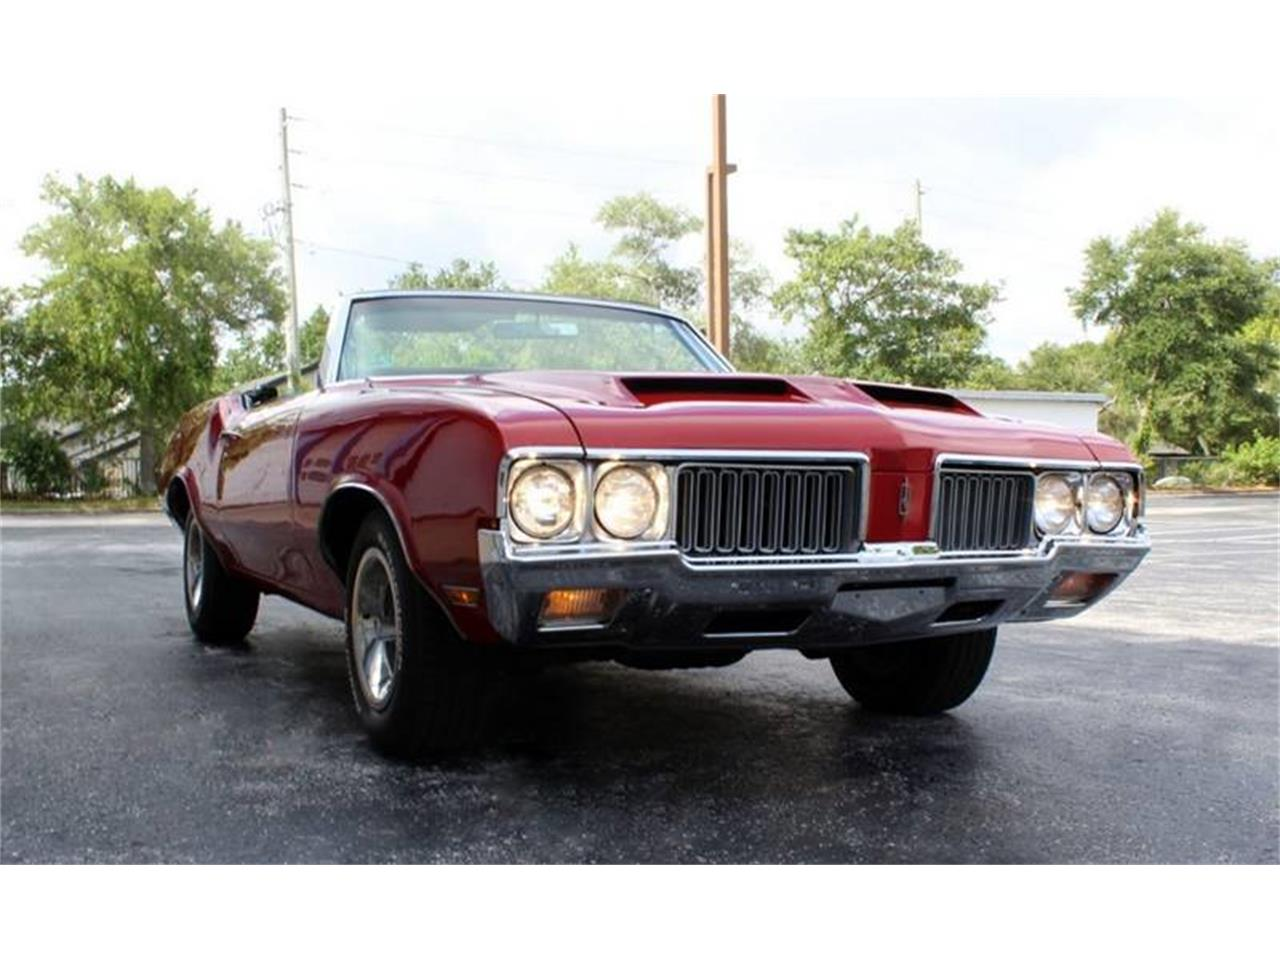 Large Picture of '70 Oldsmobile Cutlass located in Clearwater Florida Offered by PJ's Auto World - Q478